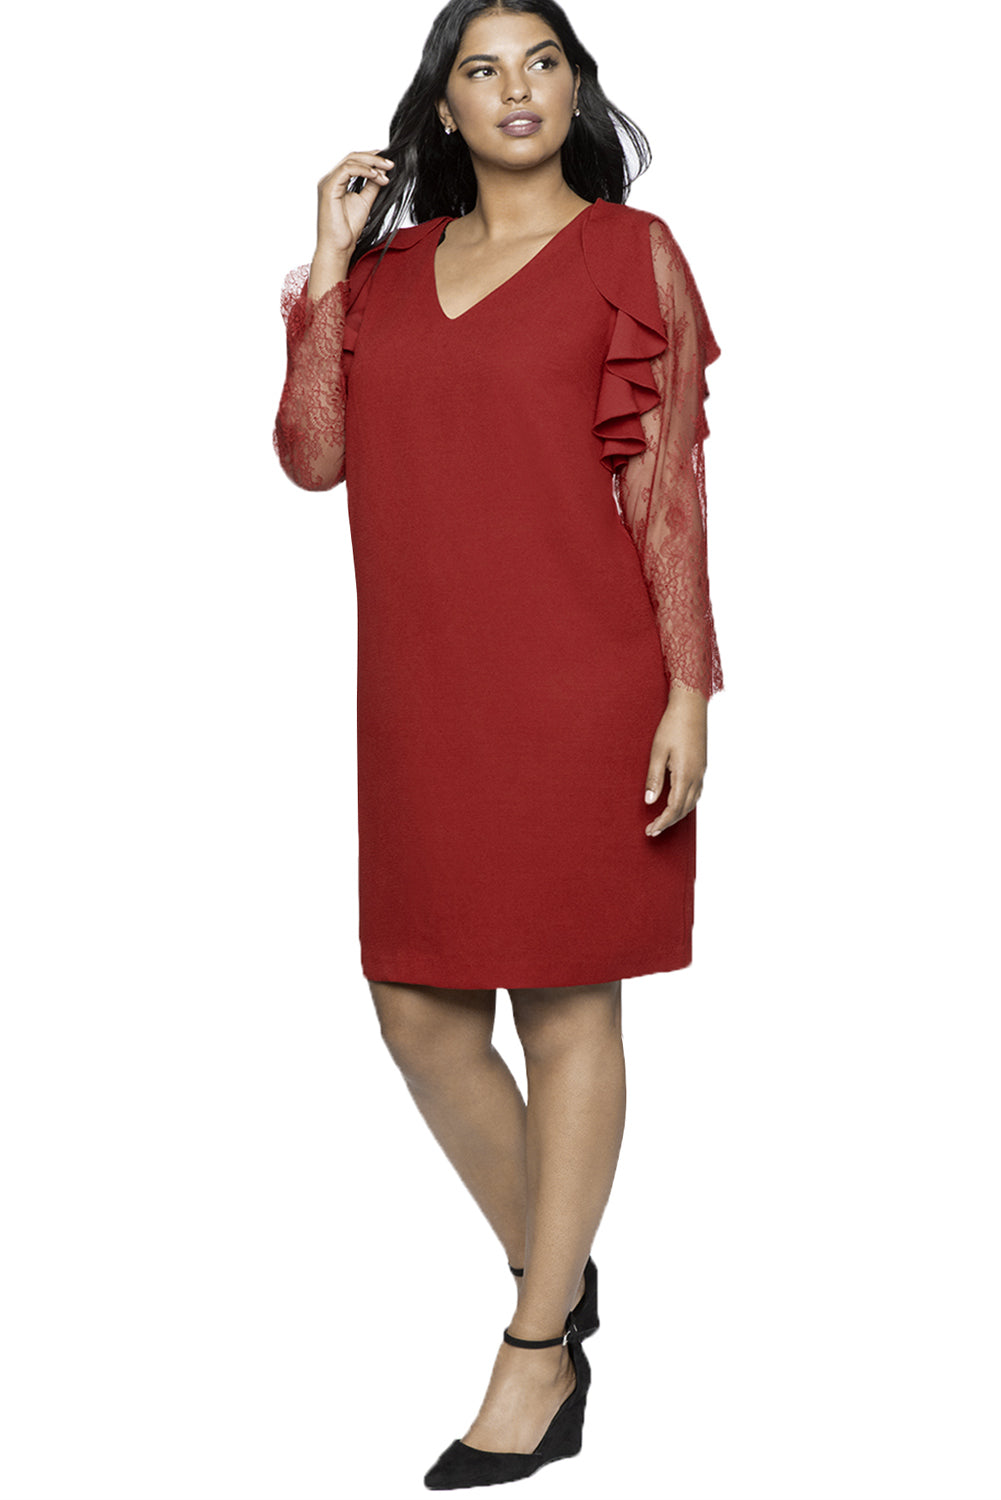 Red Ruffle Trim Lace Sleeve Plus Size Shift Dress